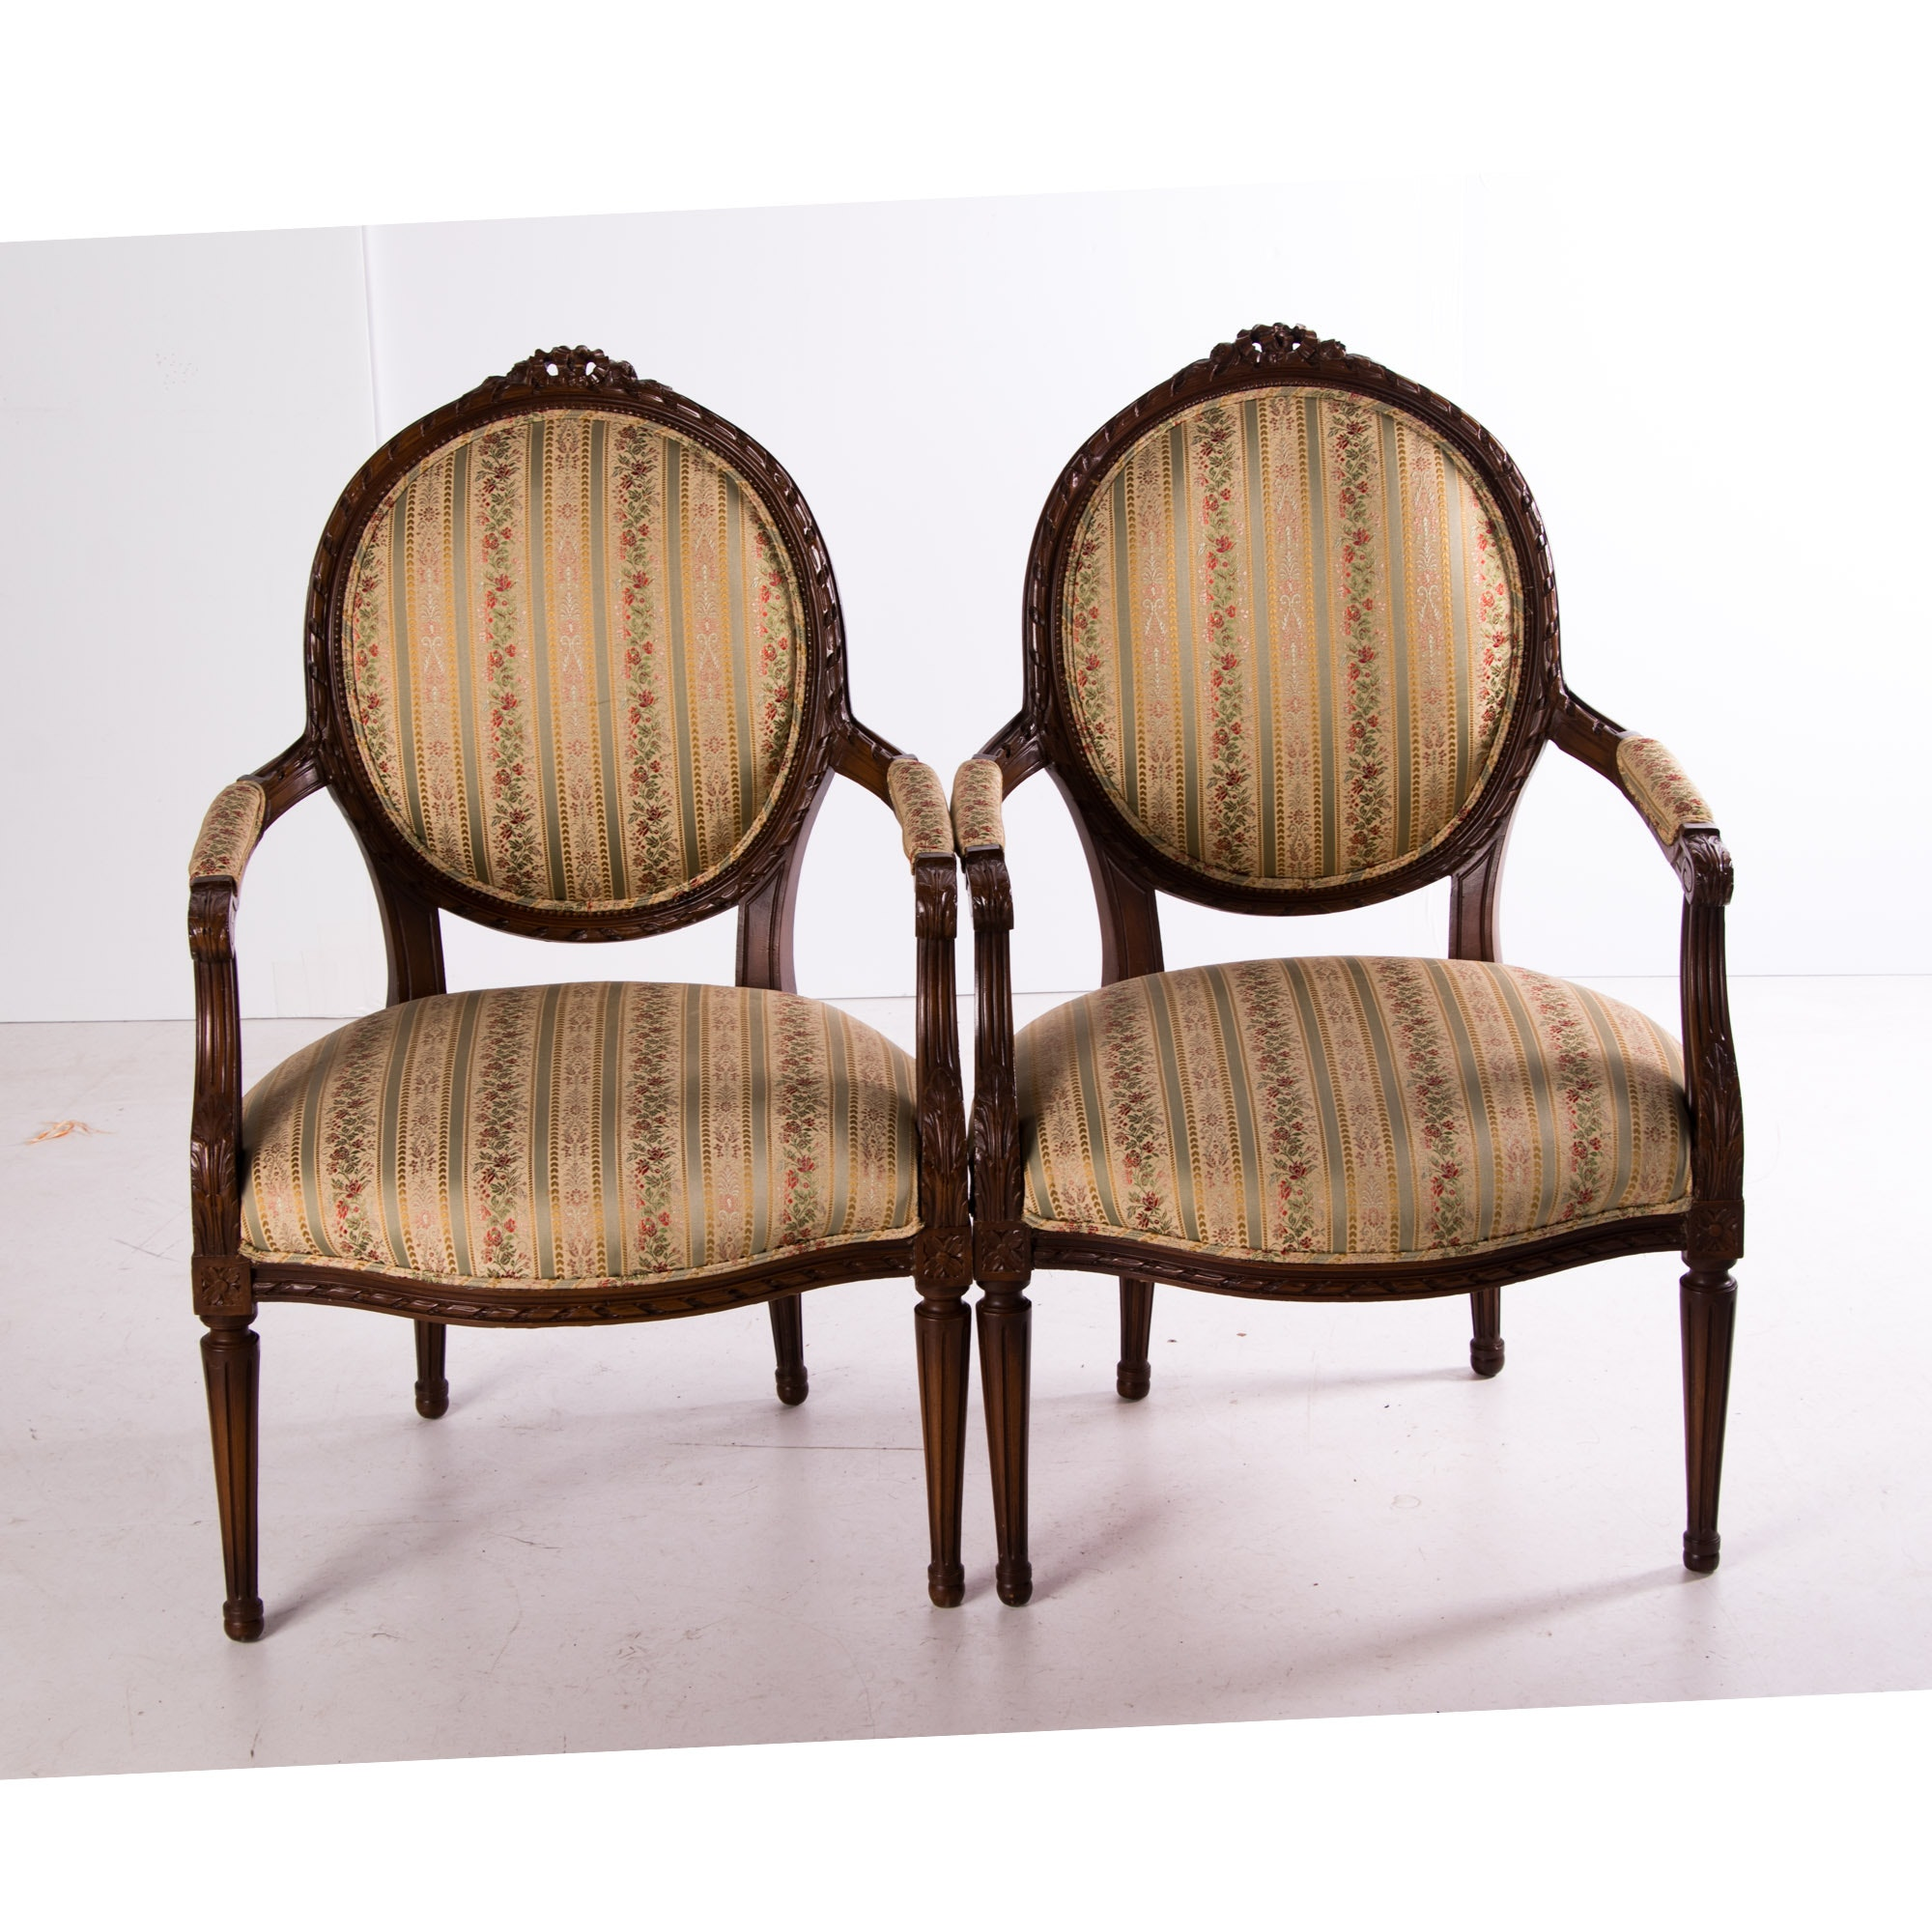 Pair of Louis XVI Style Carved Beech Fauteuils, Early 20th Century